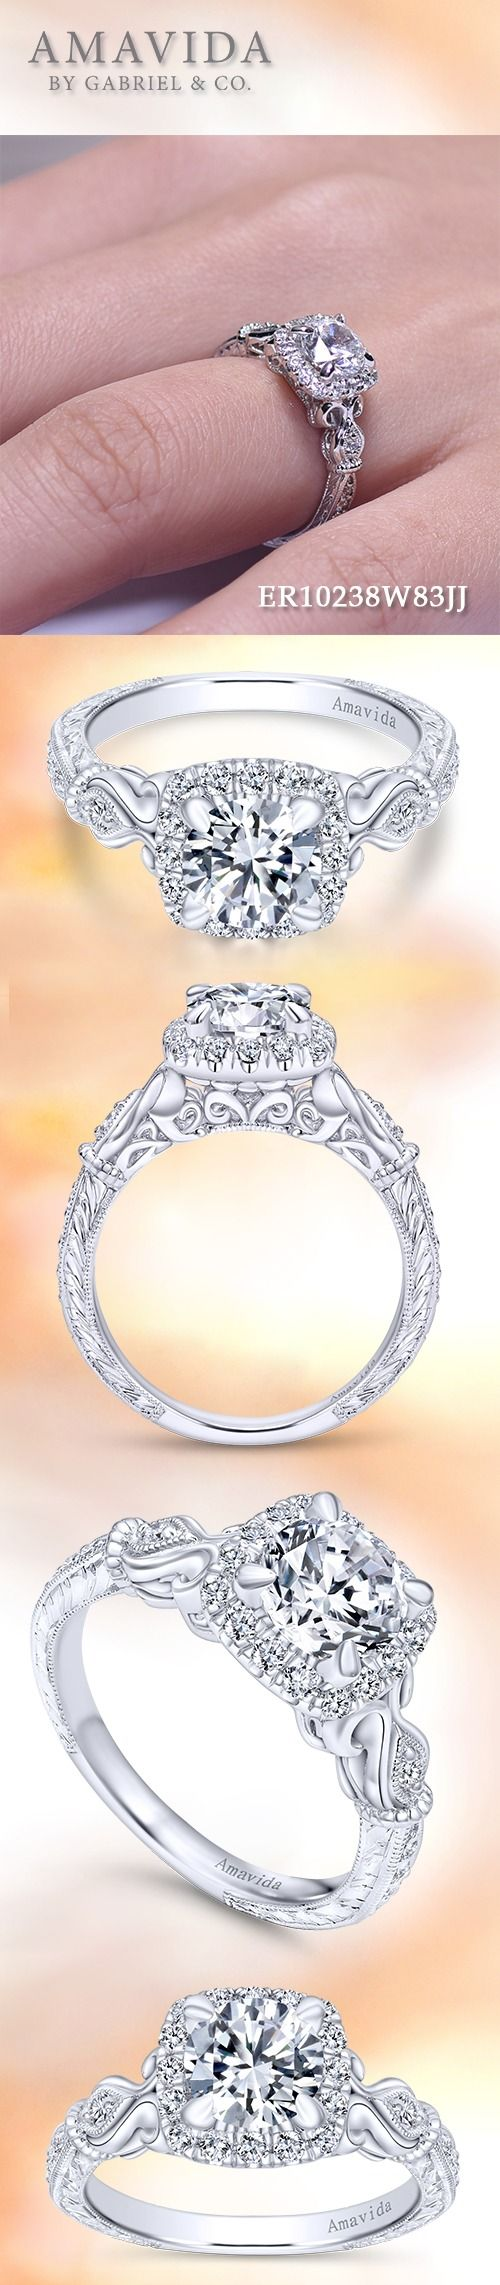 AMAVIDA by Gabriel & Co.-Voted #1 Most Preferred Fine Jewelry and Bridal Brand. 18k White Gold Round Halo  Engagement Ring.